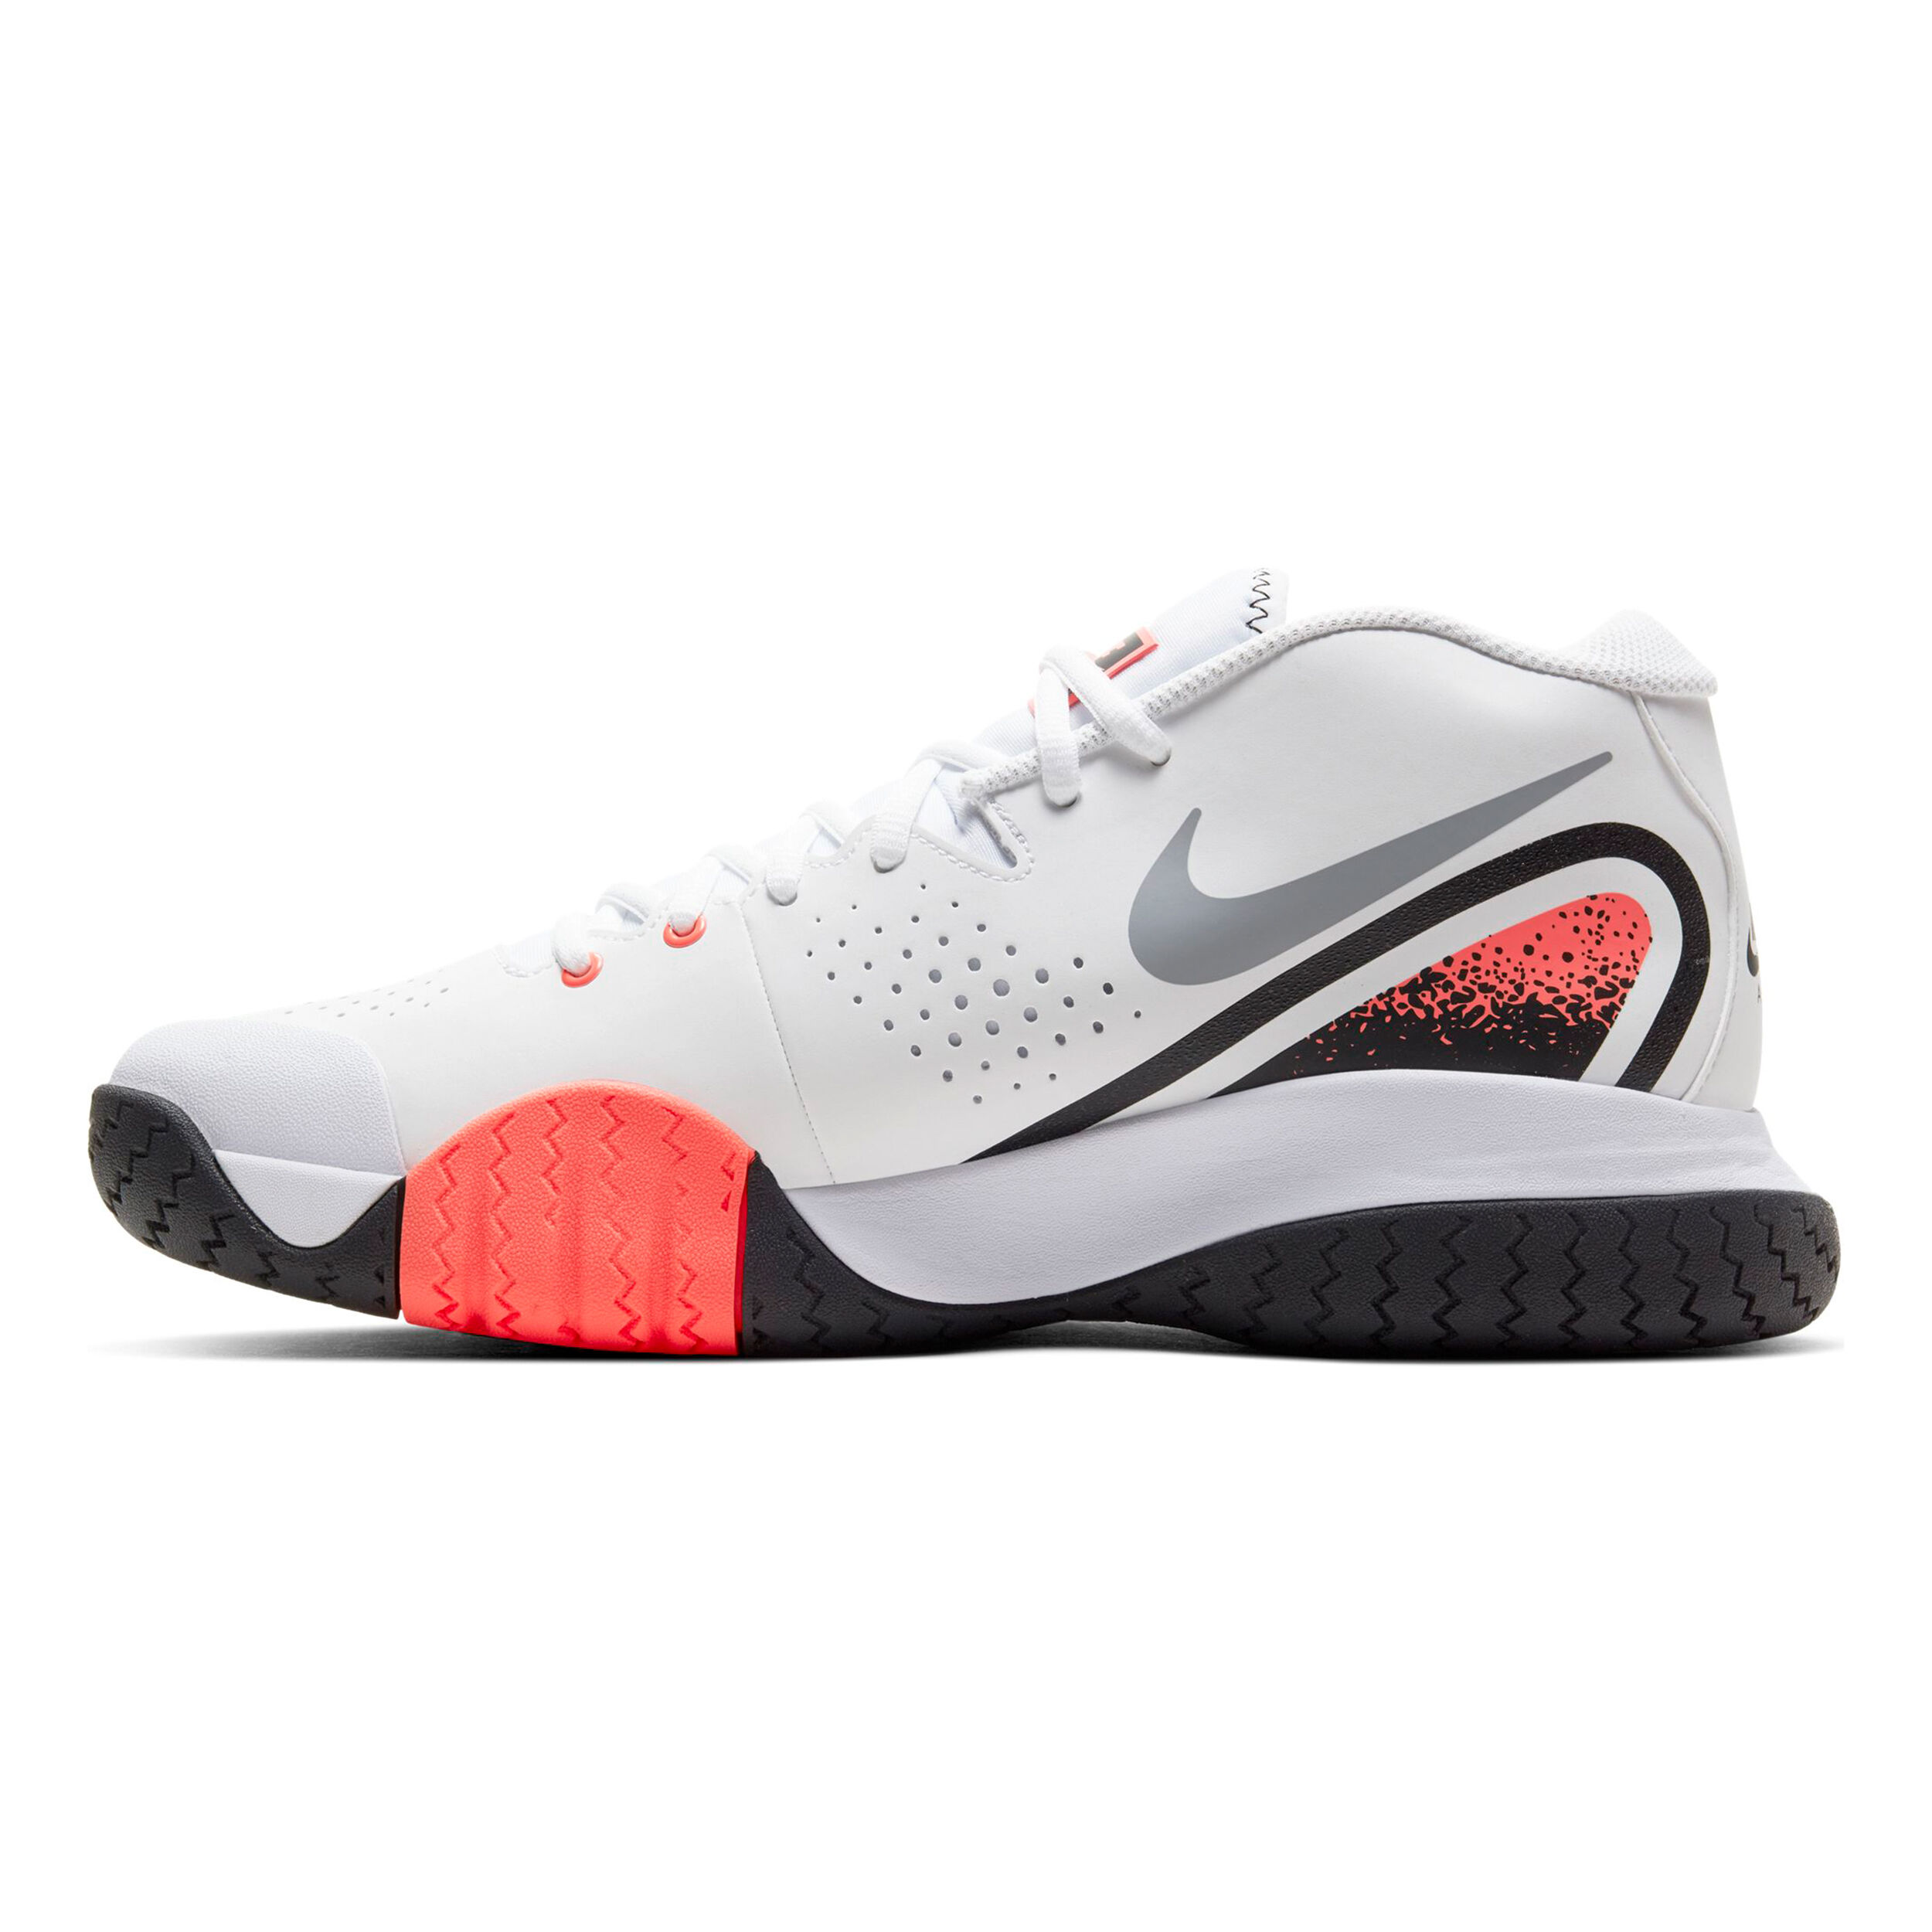 Nike Tech Challenge 20 Chaussures Toutes Surfaces Hommes